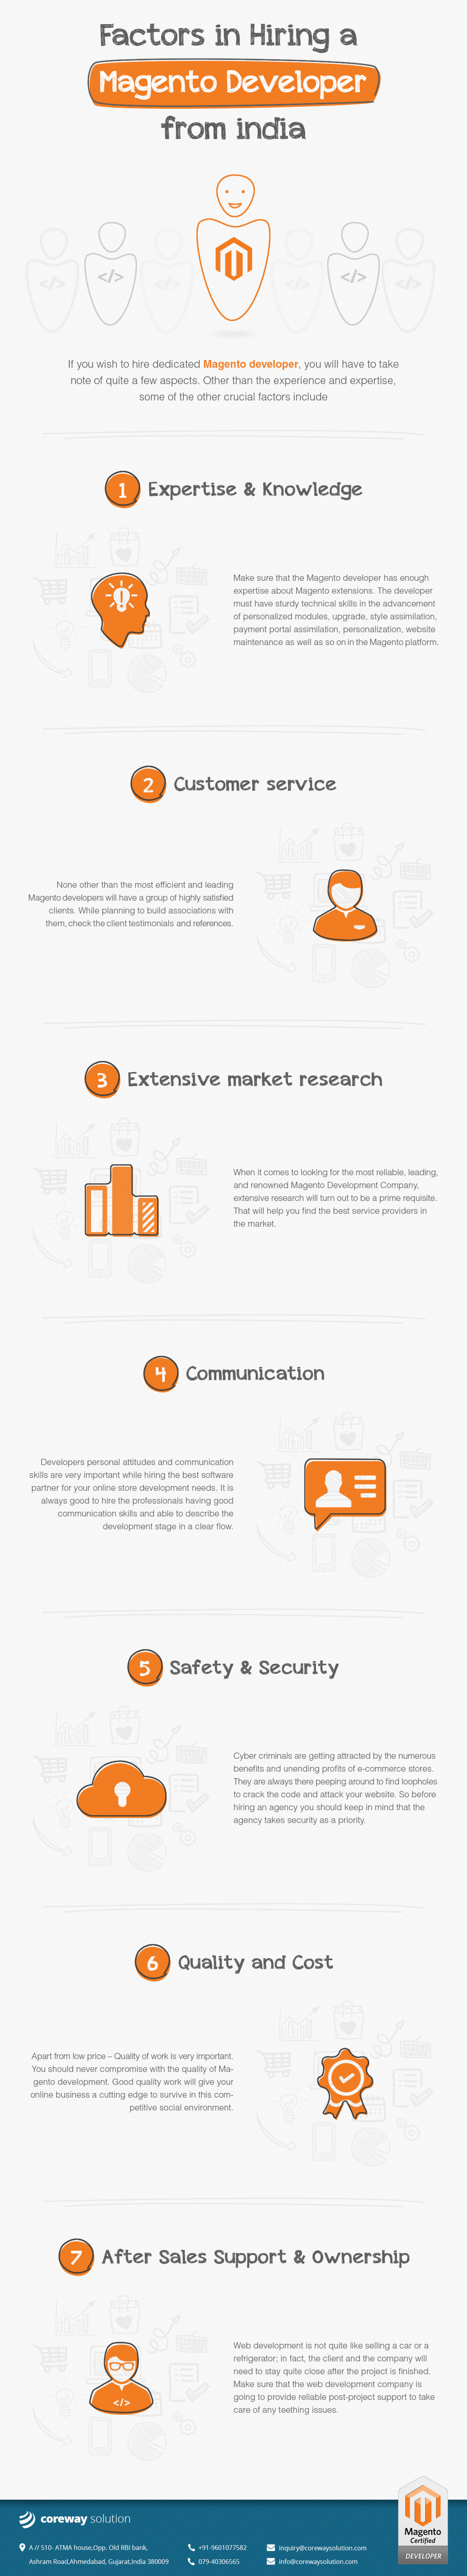 Essentials Factors to Hire a Qualified Magento Developer Infographic